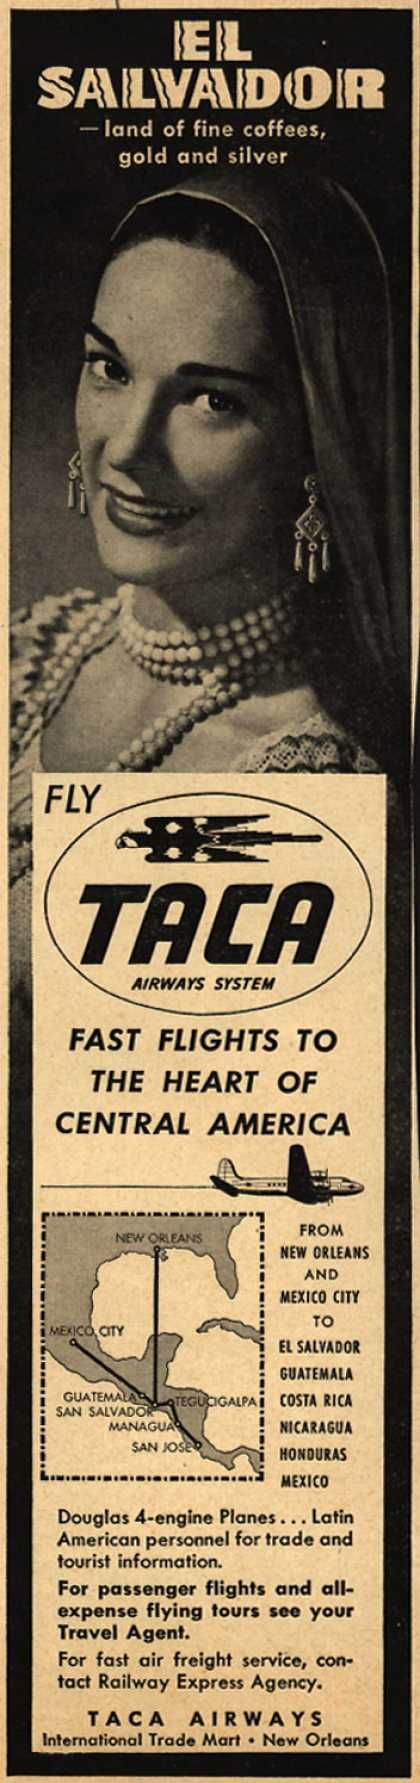 TACA Airways System's El Salvador – El Salvador -land of fine coffees, gold and silver (1948)